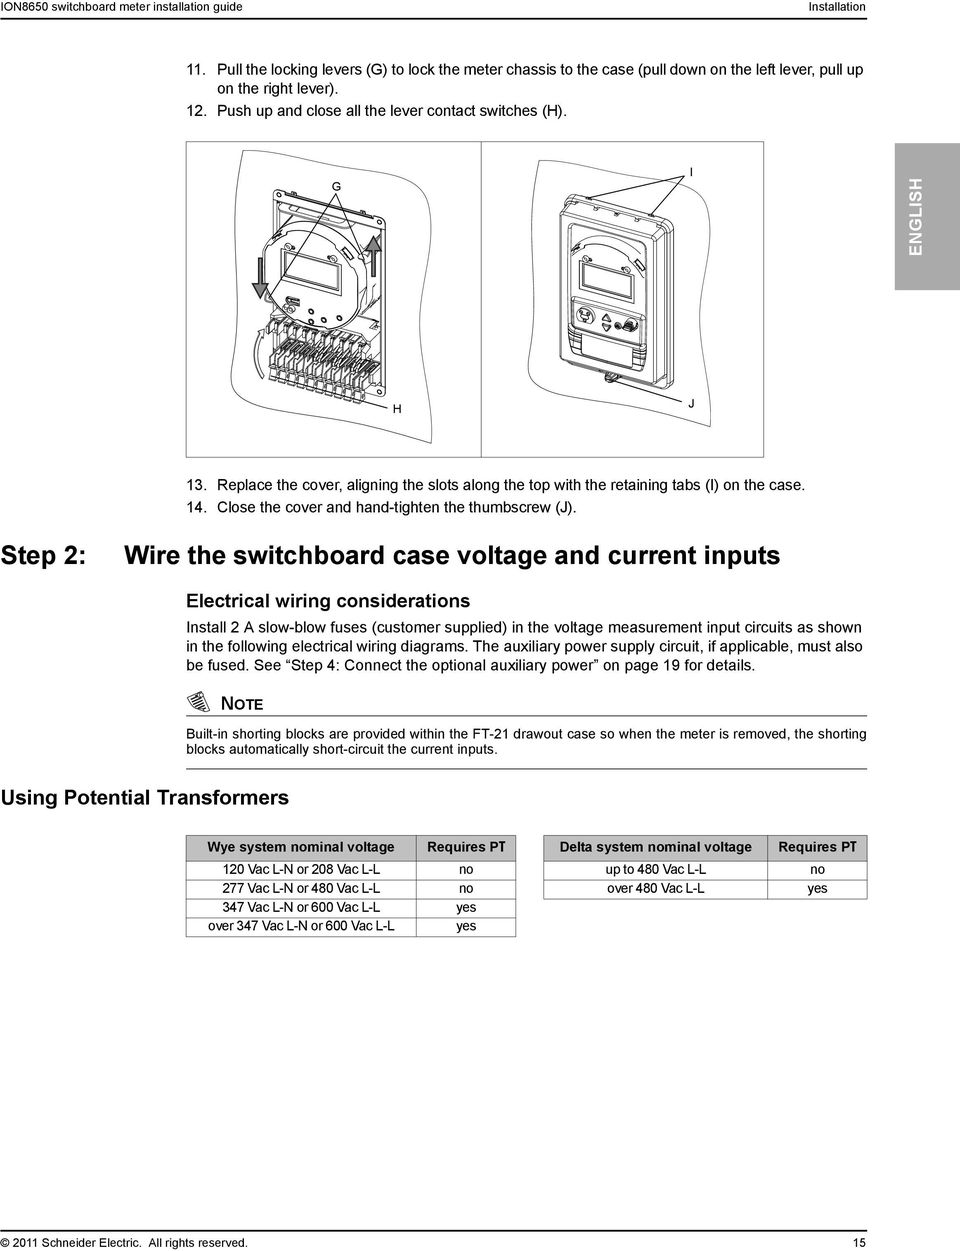 Powerlogic Ion Pdf Case Vac Wiring Diagram Lose The Cover And Hand Tighten Thumbscrew J